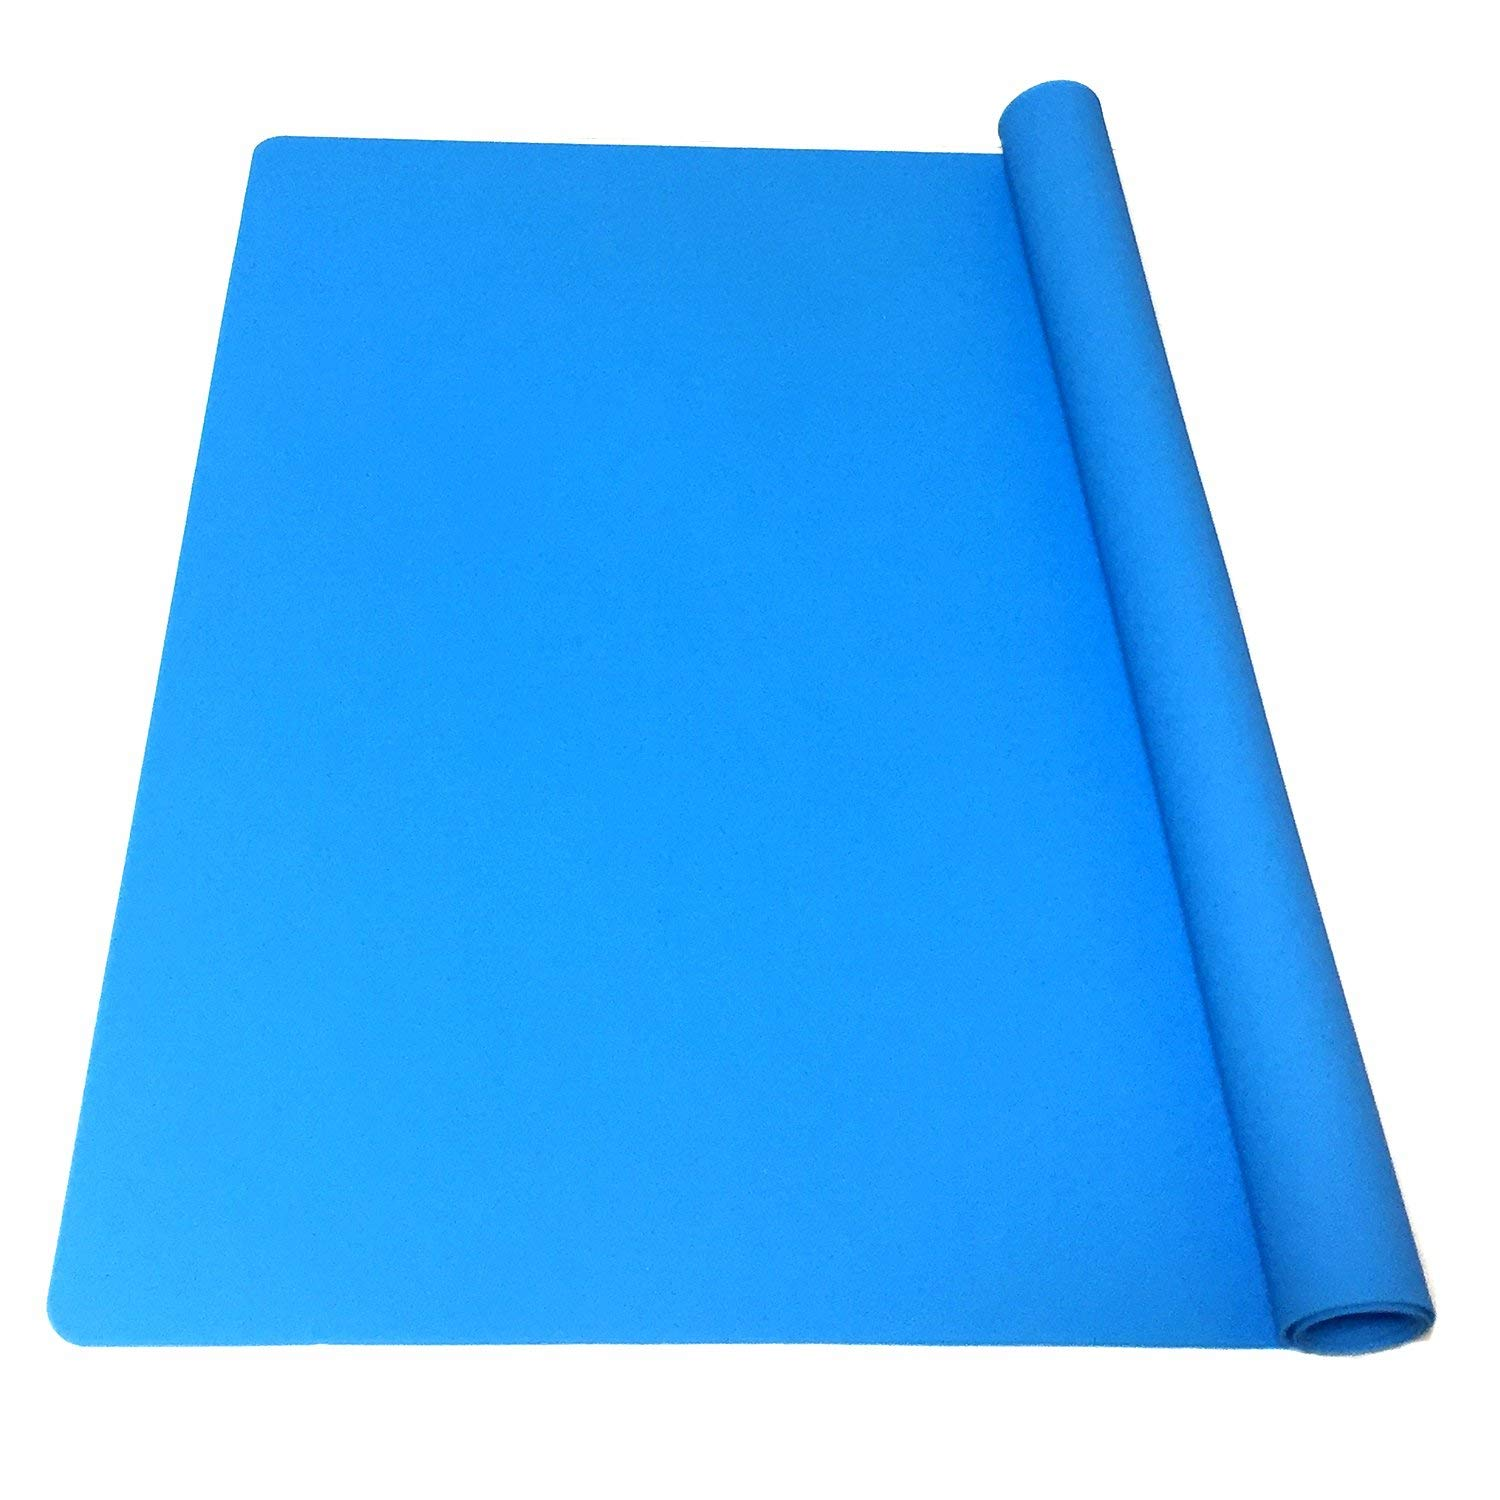 Top 7 Best Silicone Placemats Reviews in 2020 3